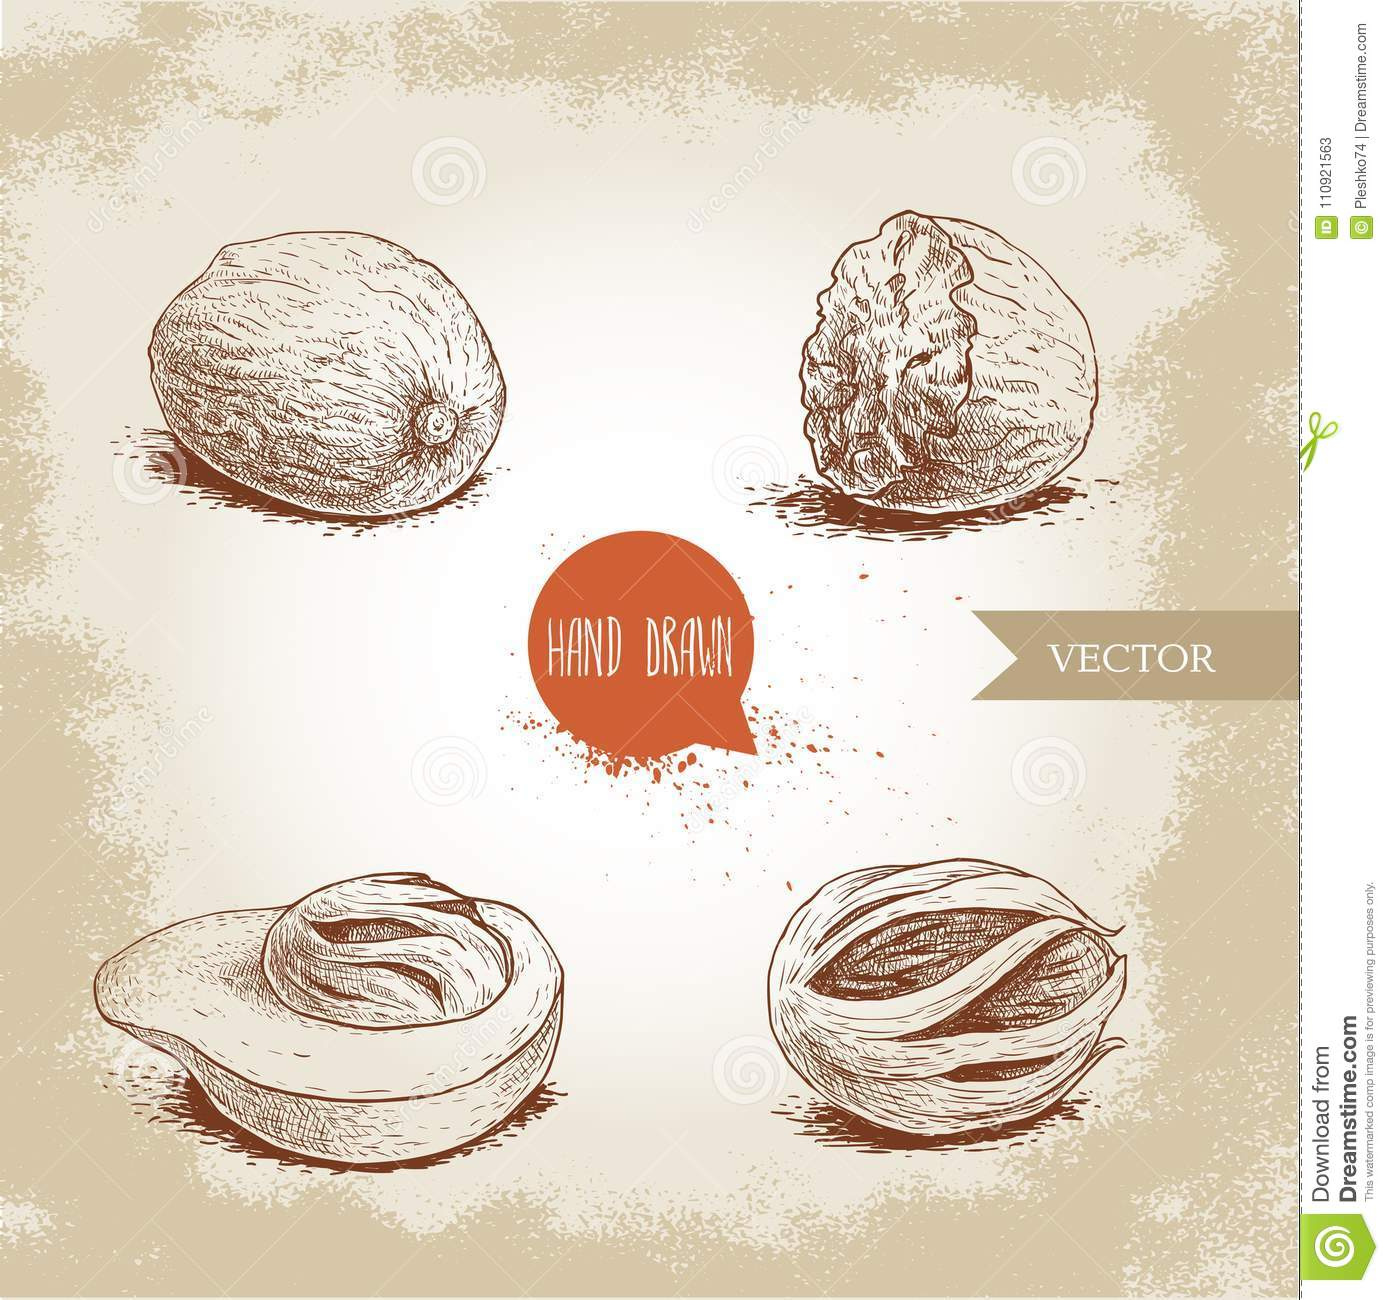 Hand drawn sketch style nutmegs set. Dried seeds and fresh mace fruits.